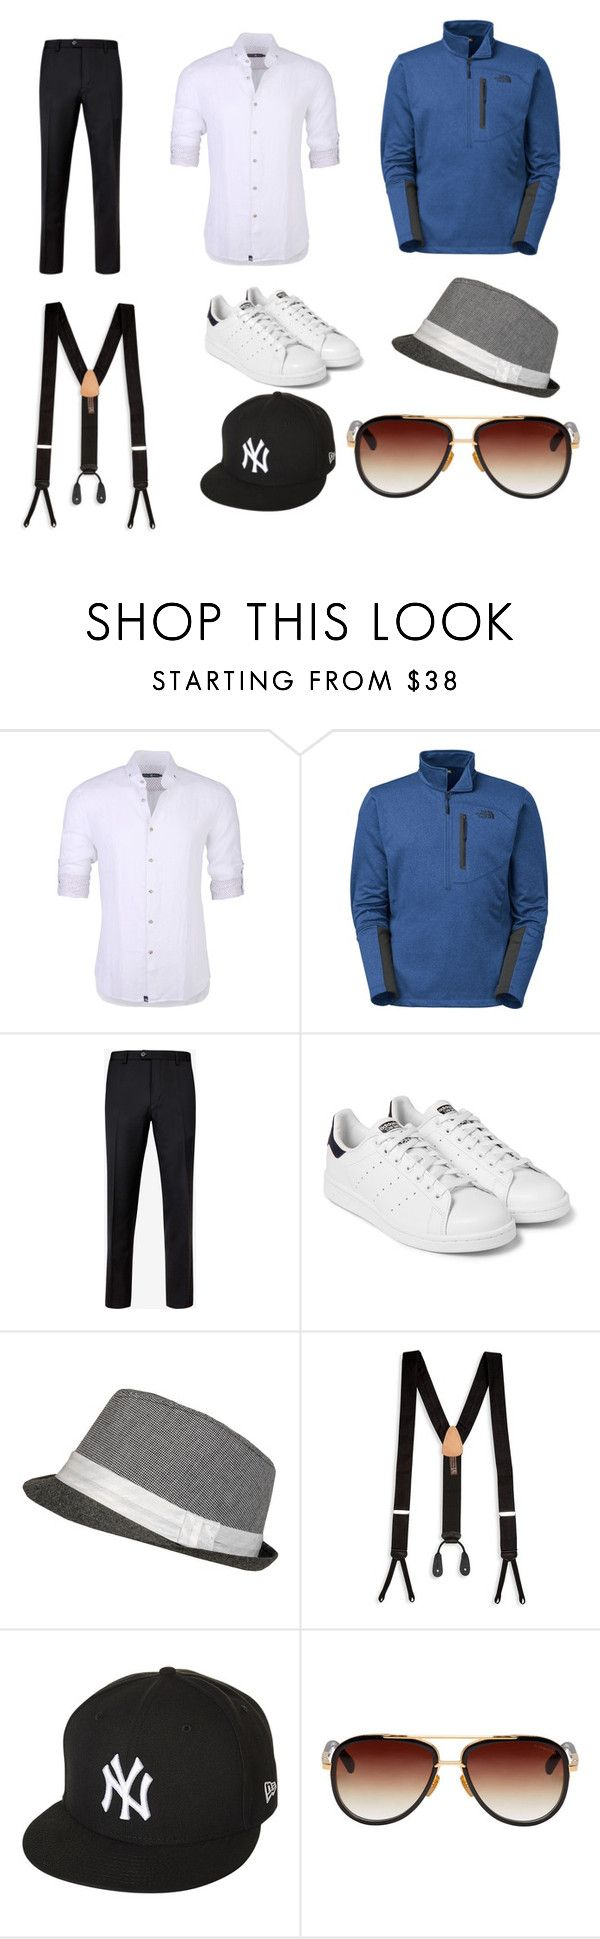 """Не люблю мужские вещи"" by kruchinenko ❤ liked on Polyvore featuring Stone Rose, The North Face, Ted Baker, adidas Originals, Trafalgar, New Era, Dita, men's fashion and menswear"